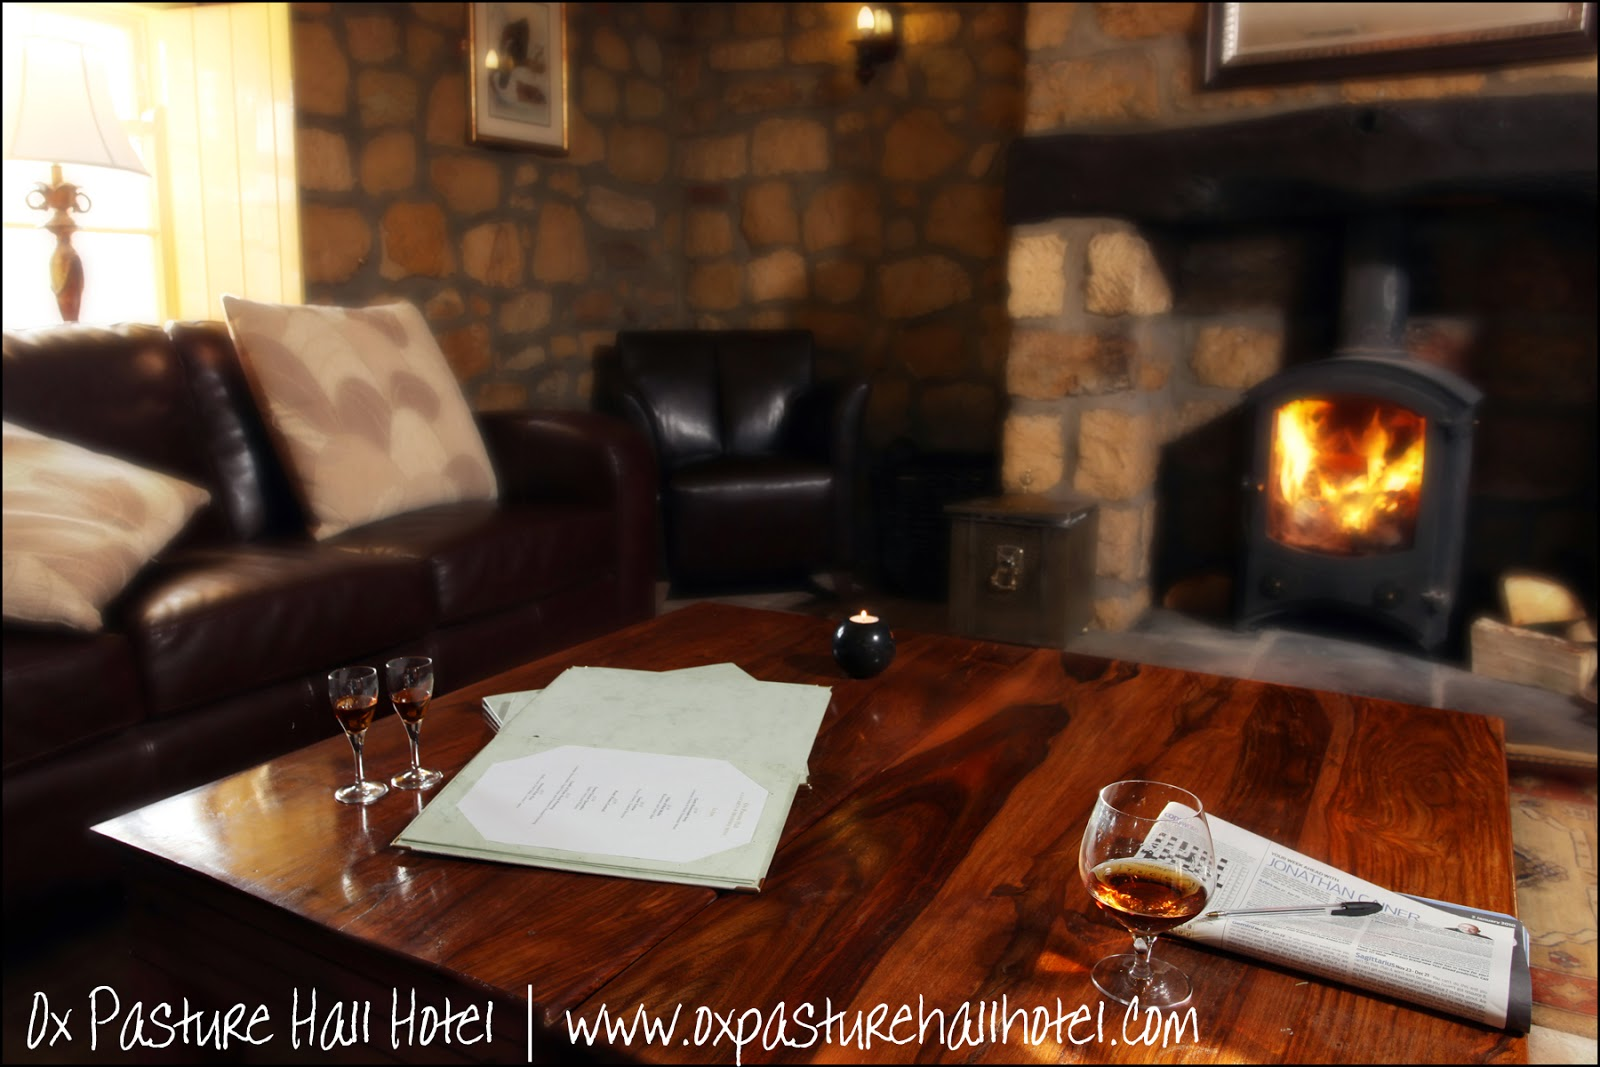 Allow your guests to relax in the cozy lodges at Ox Pasture Hall Hotel | Anyonita-nibbles.co.uk